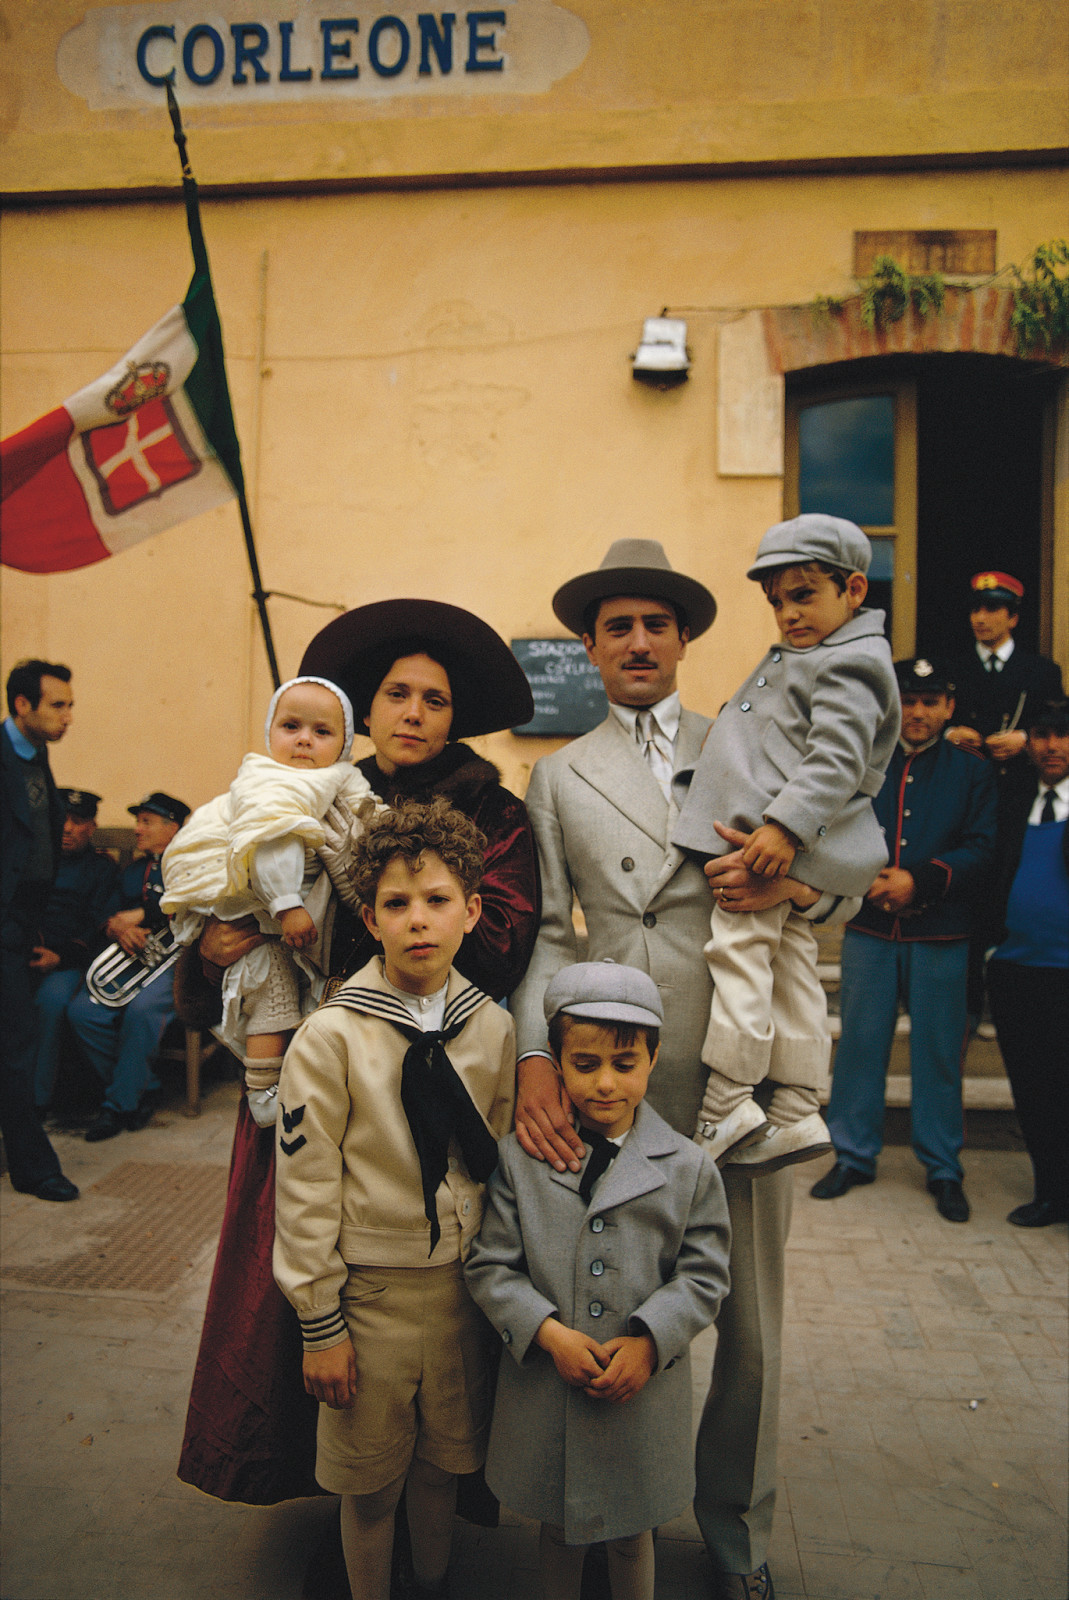 Corleone Family Arrives in Sicily, Godfather II, 1973